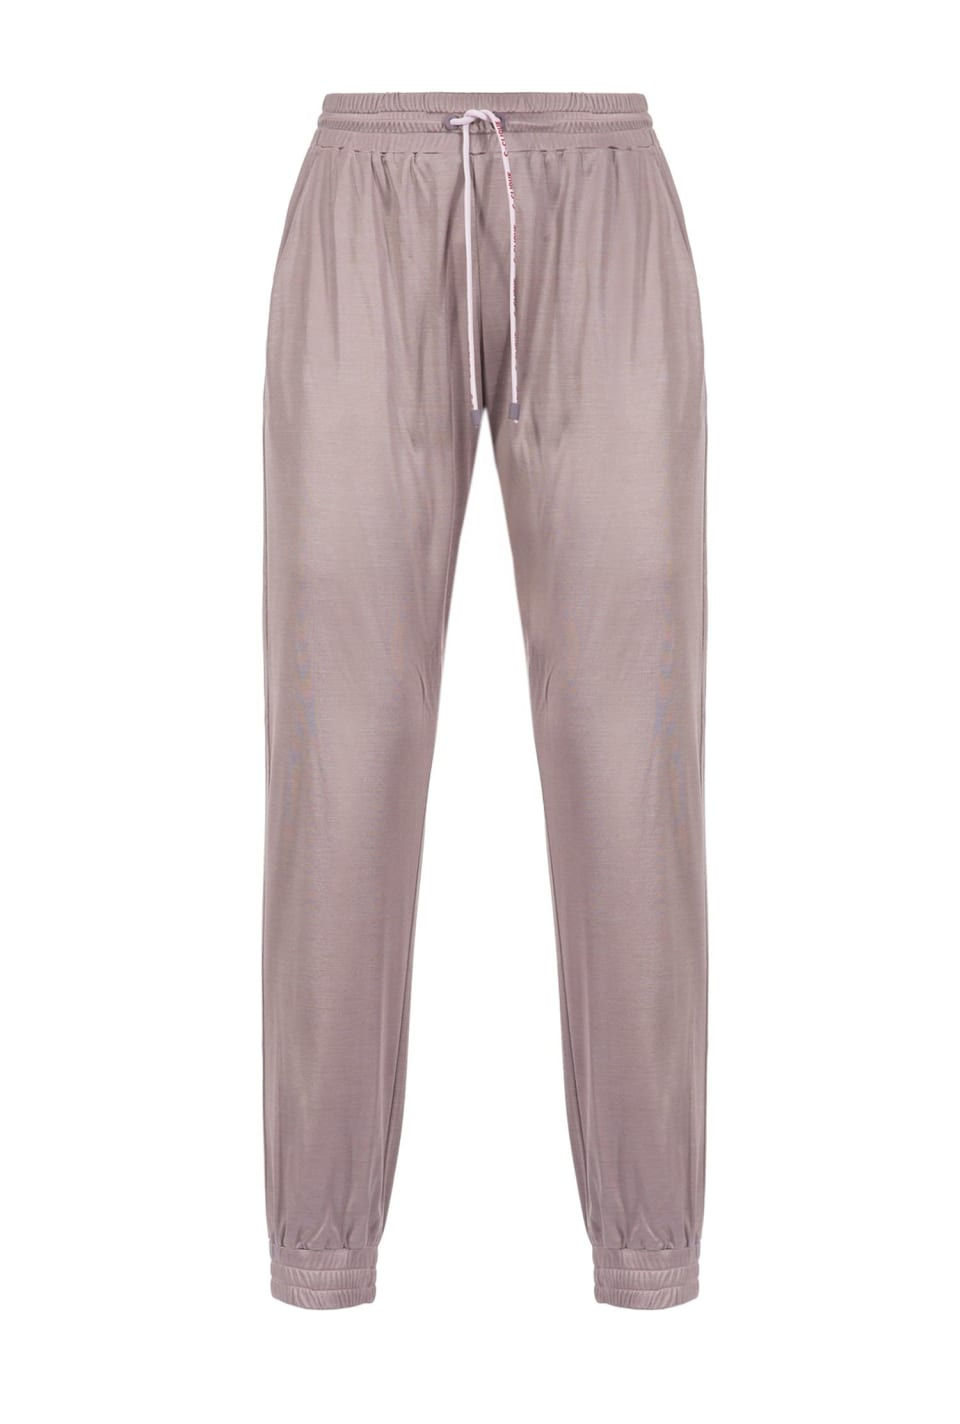 Pantalon de jogging en interlock brillant